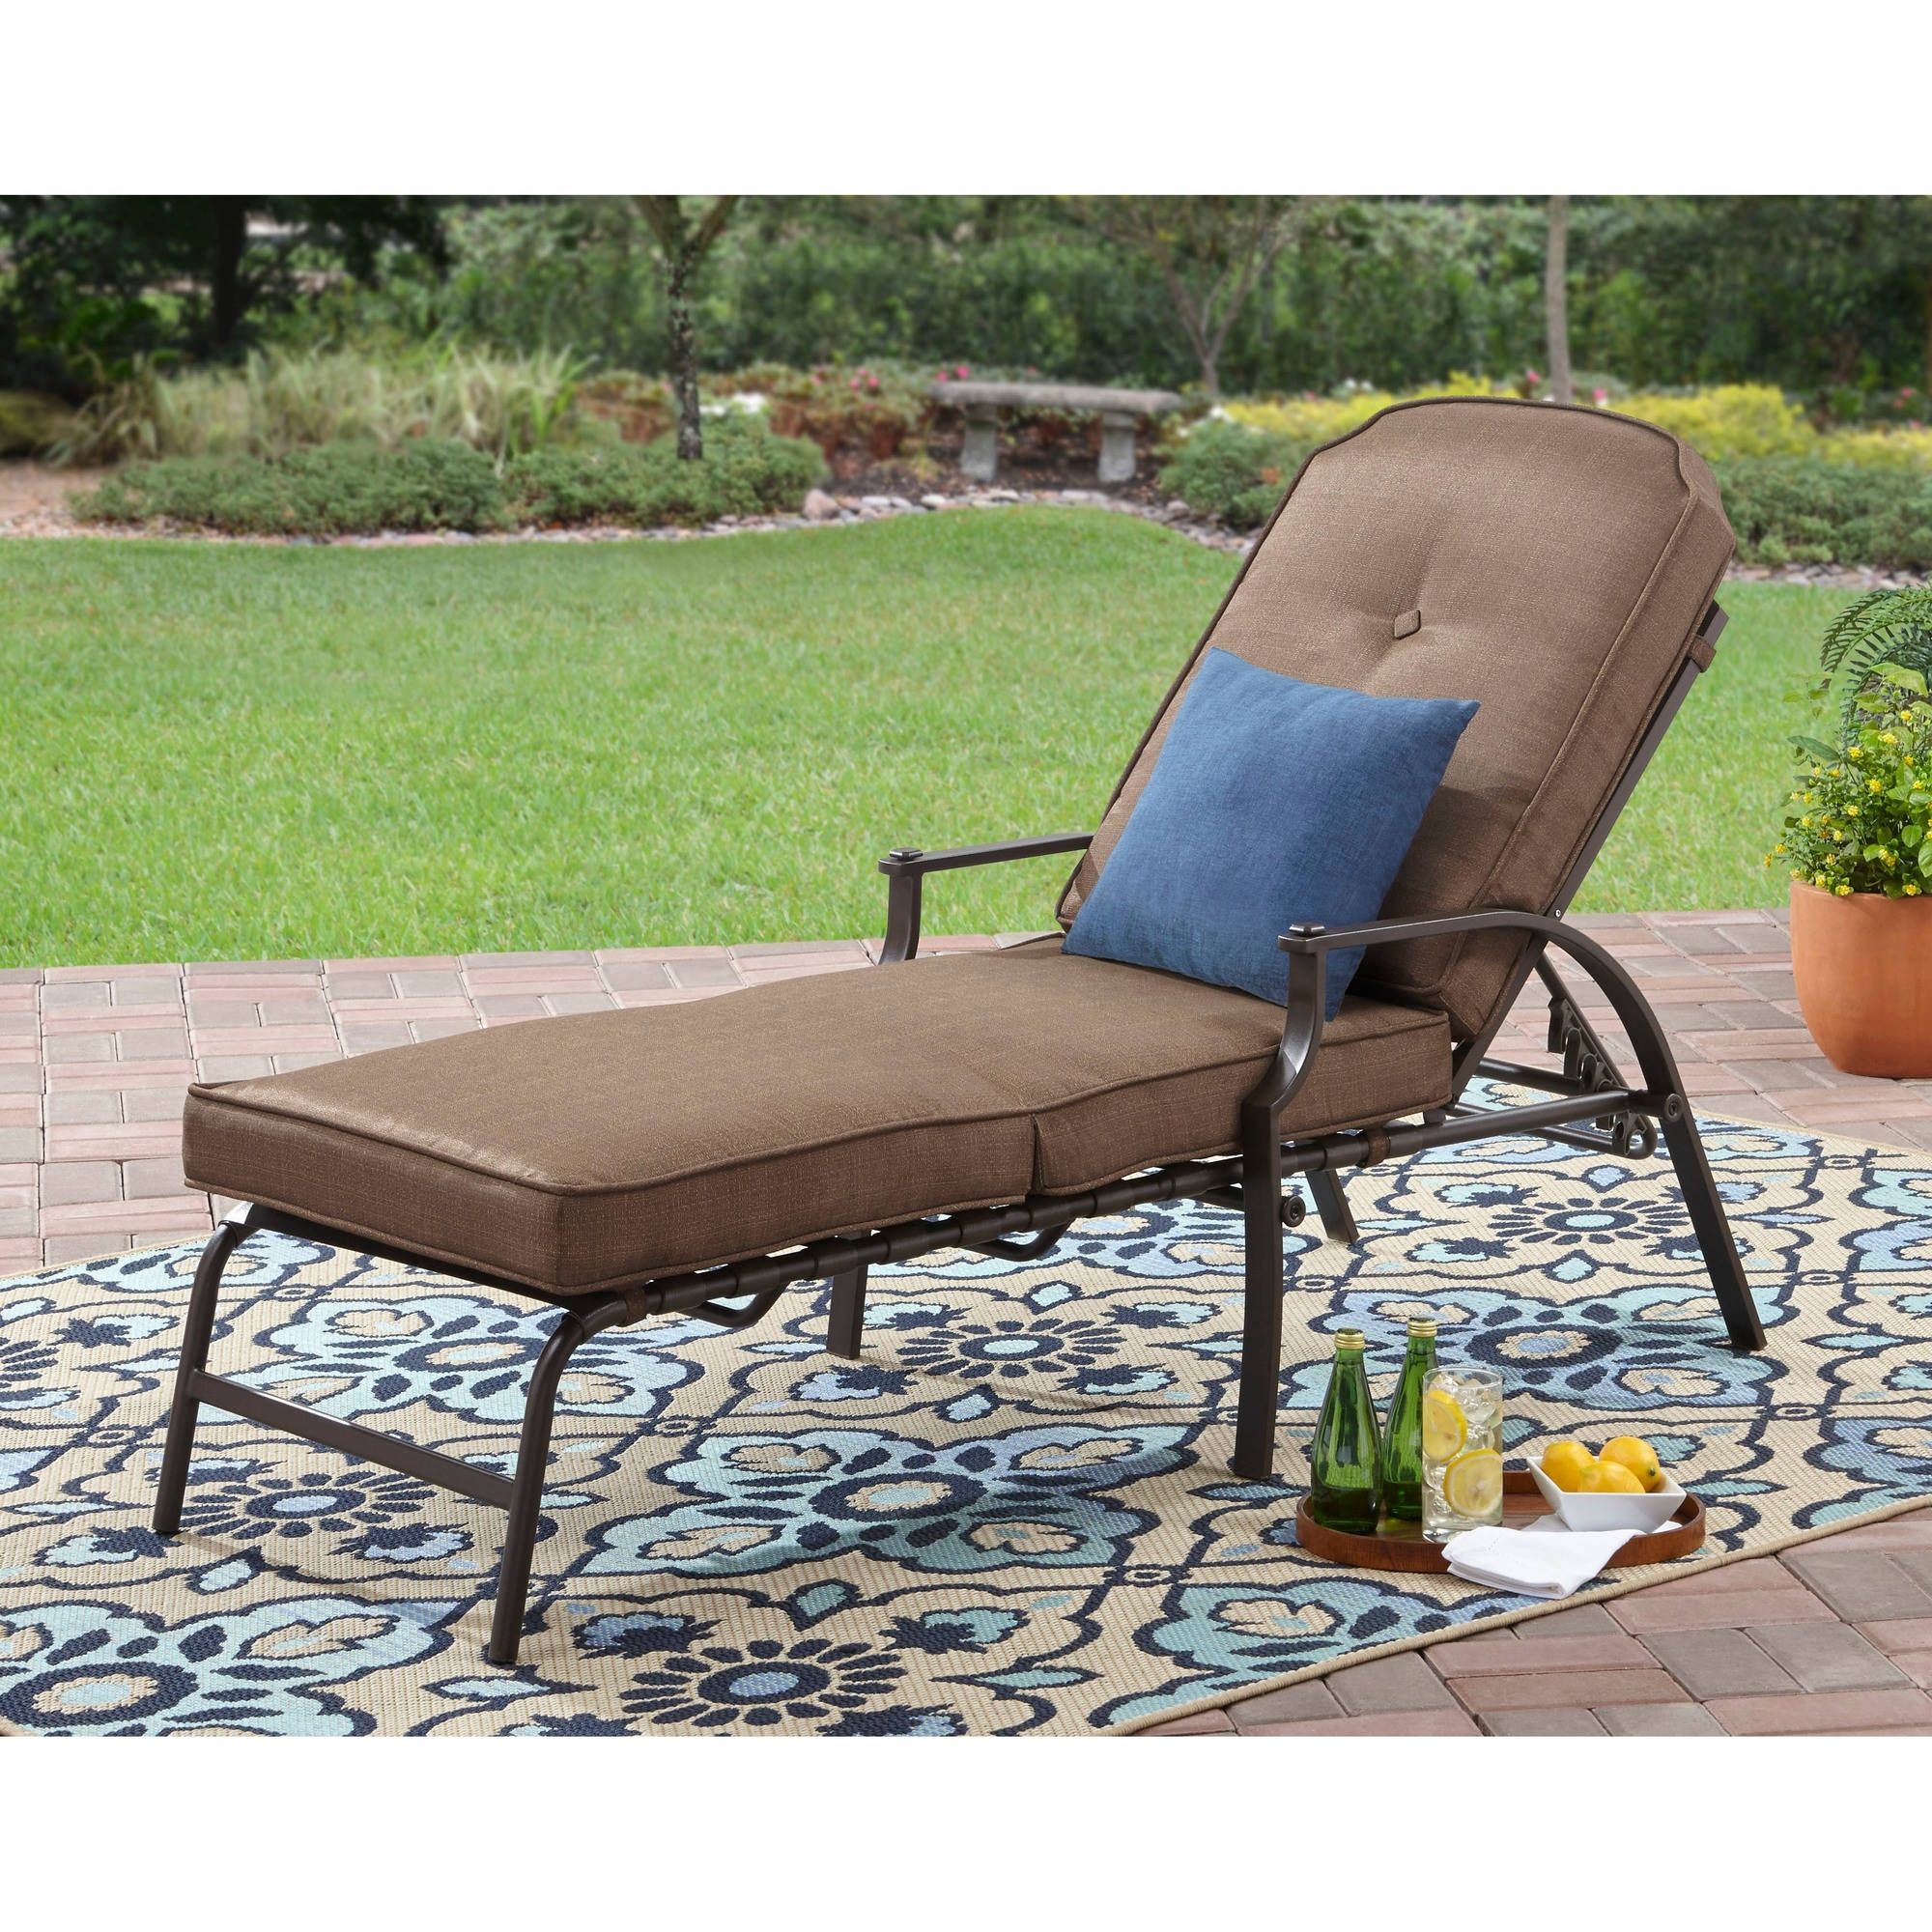 Vinyl Outdoor Chaise Lounge Chairs In Most Up To Date Mainstays Wentworth Chaise Lounge – Walmart (Gallery 15 of 15)